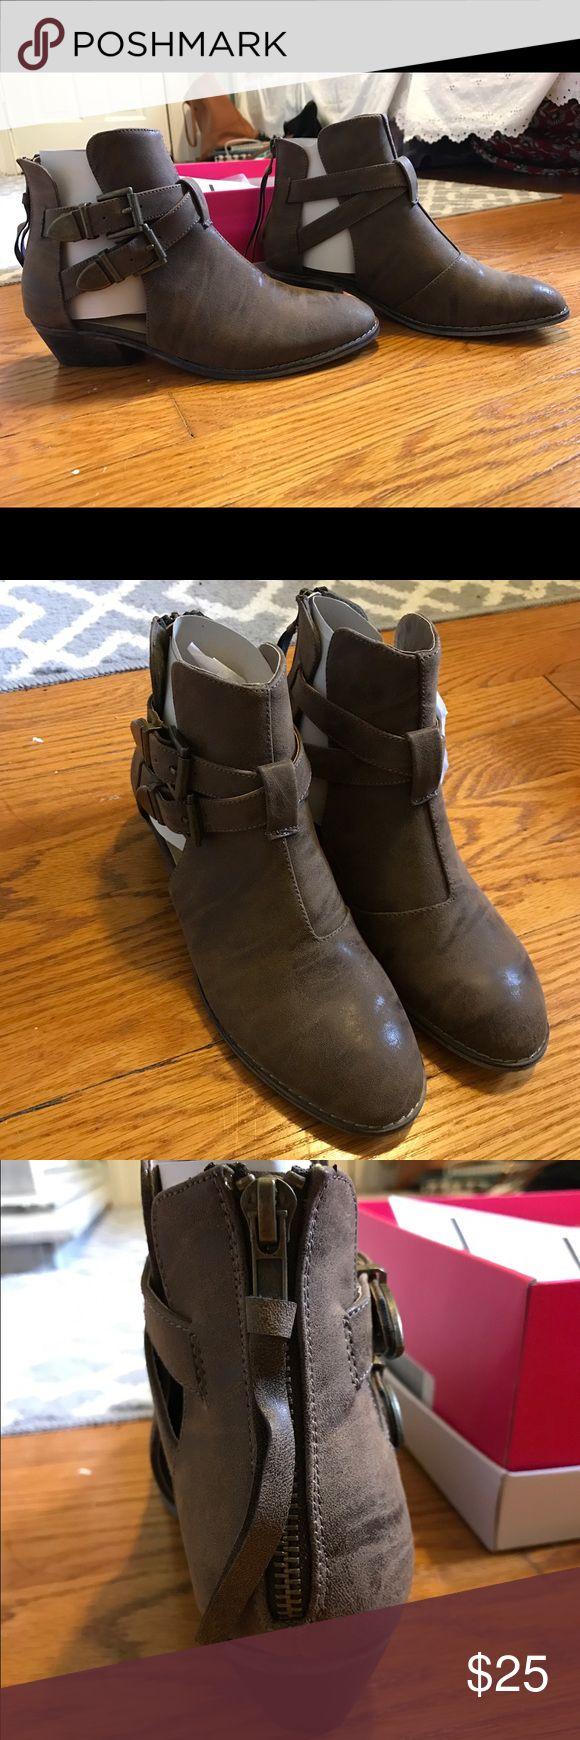 Short Ankle Boots Very cute, but never worn! Faux leather, brown, 1 inch heel. Shoes Ankle Boots & Booties